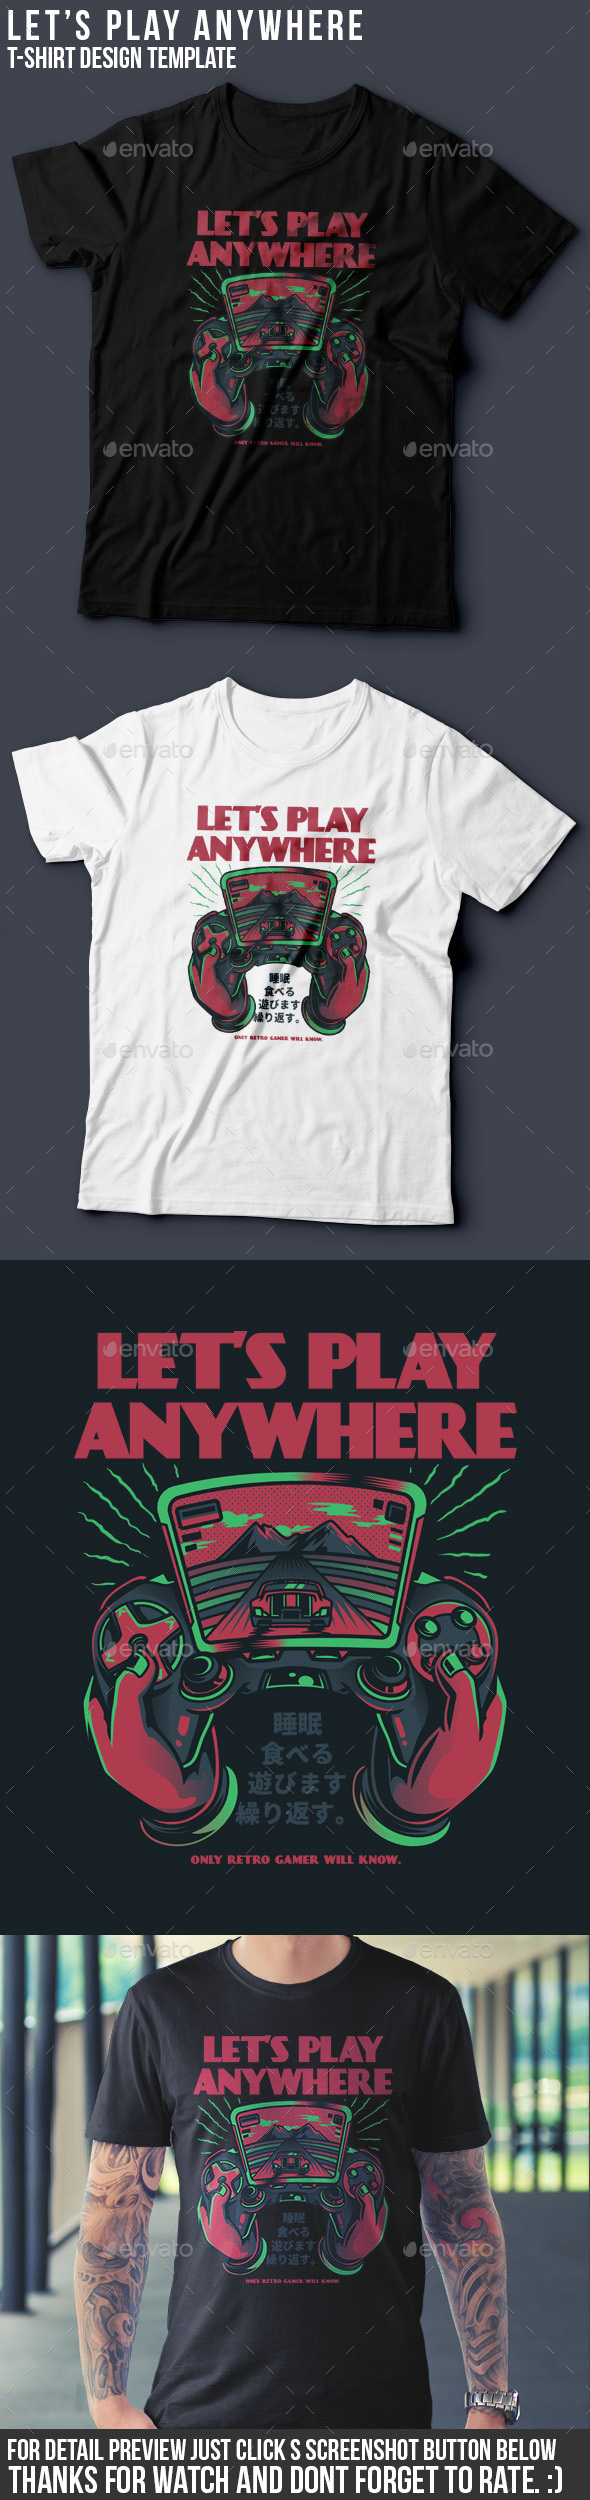 Lets Play Anywhere T-Shirt Design - Sports & Teams T-Shirts